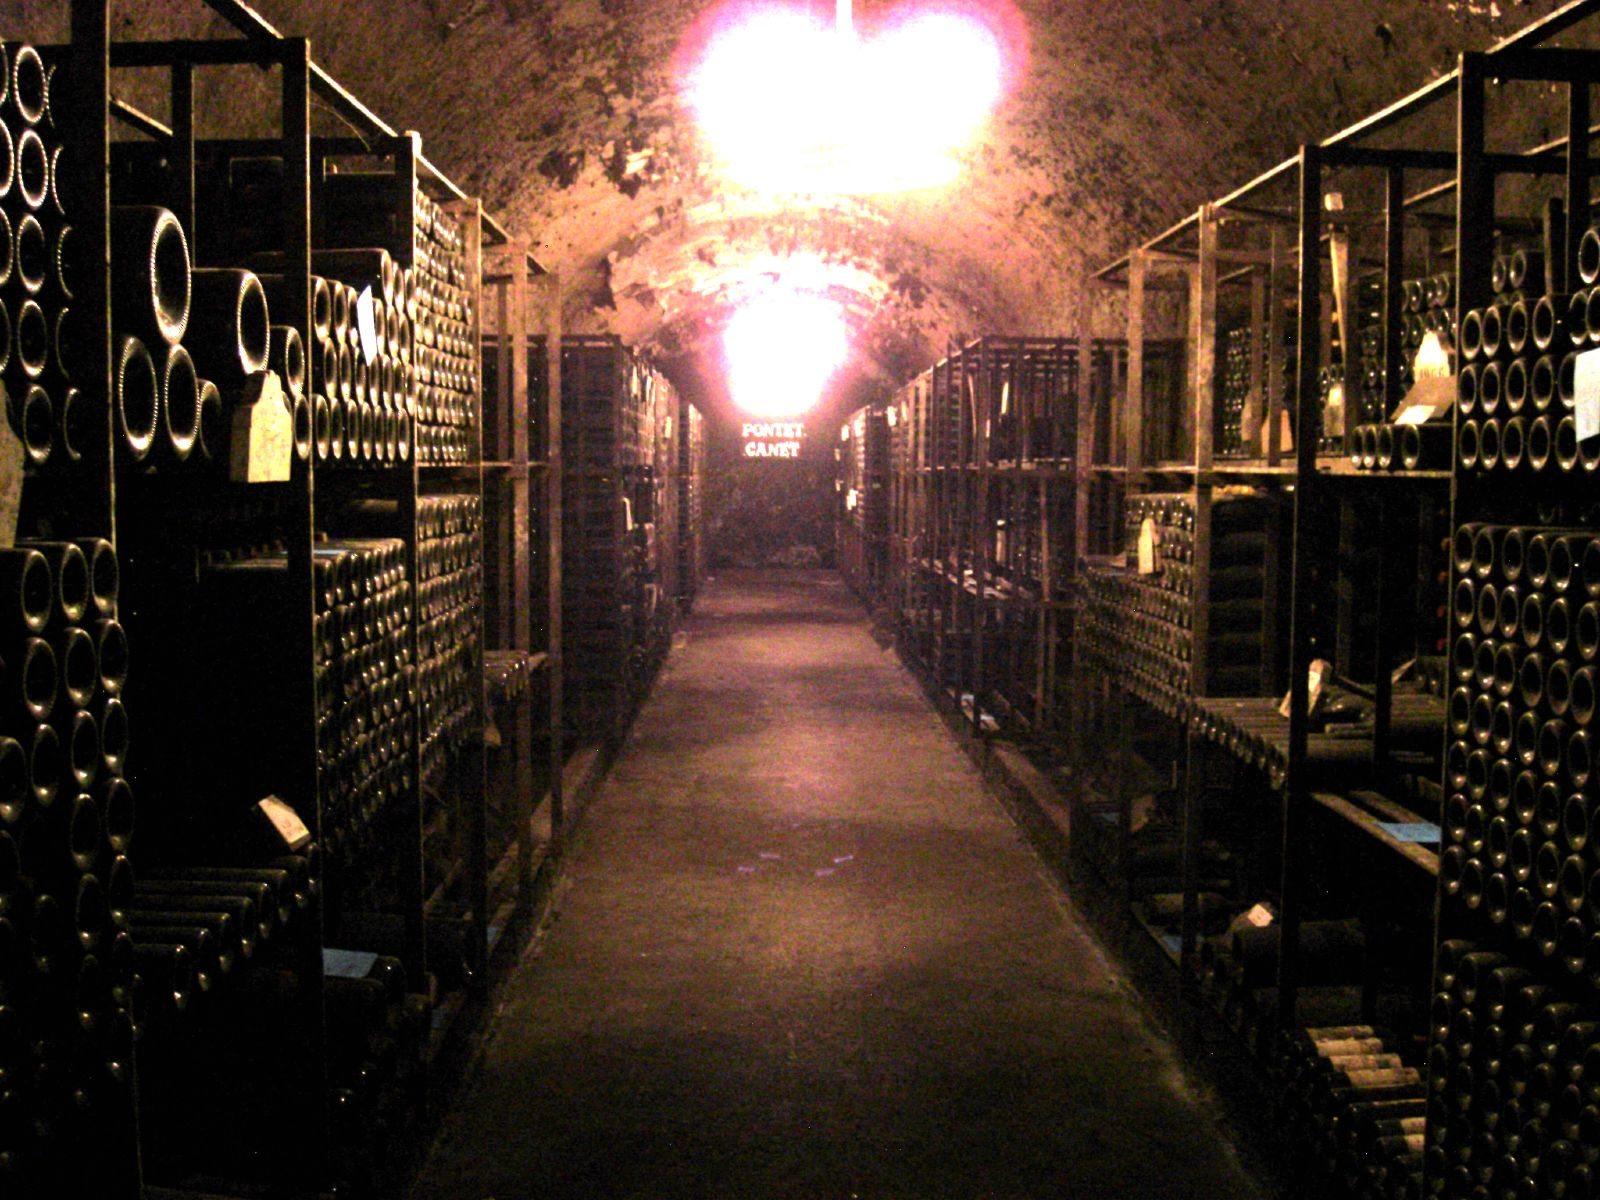 FileUnderground wine cellar of Pontet-Canet.jpg & File:Underground wine cellar of Pontet-Canet.jpg - Wikipedia